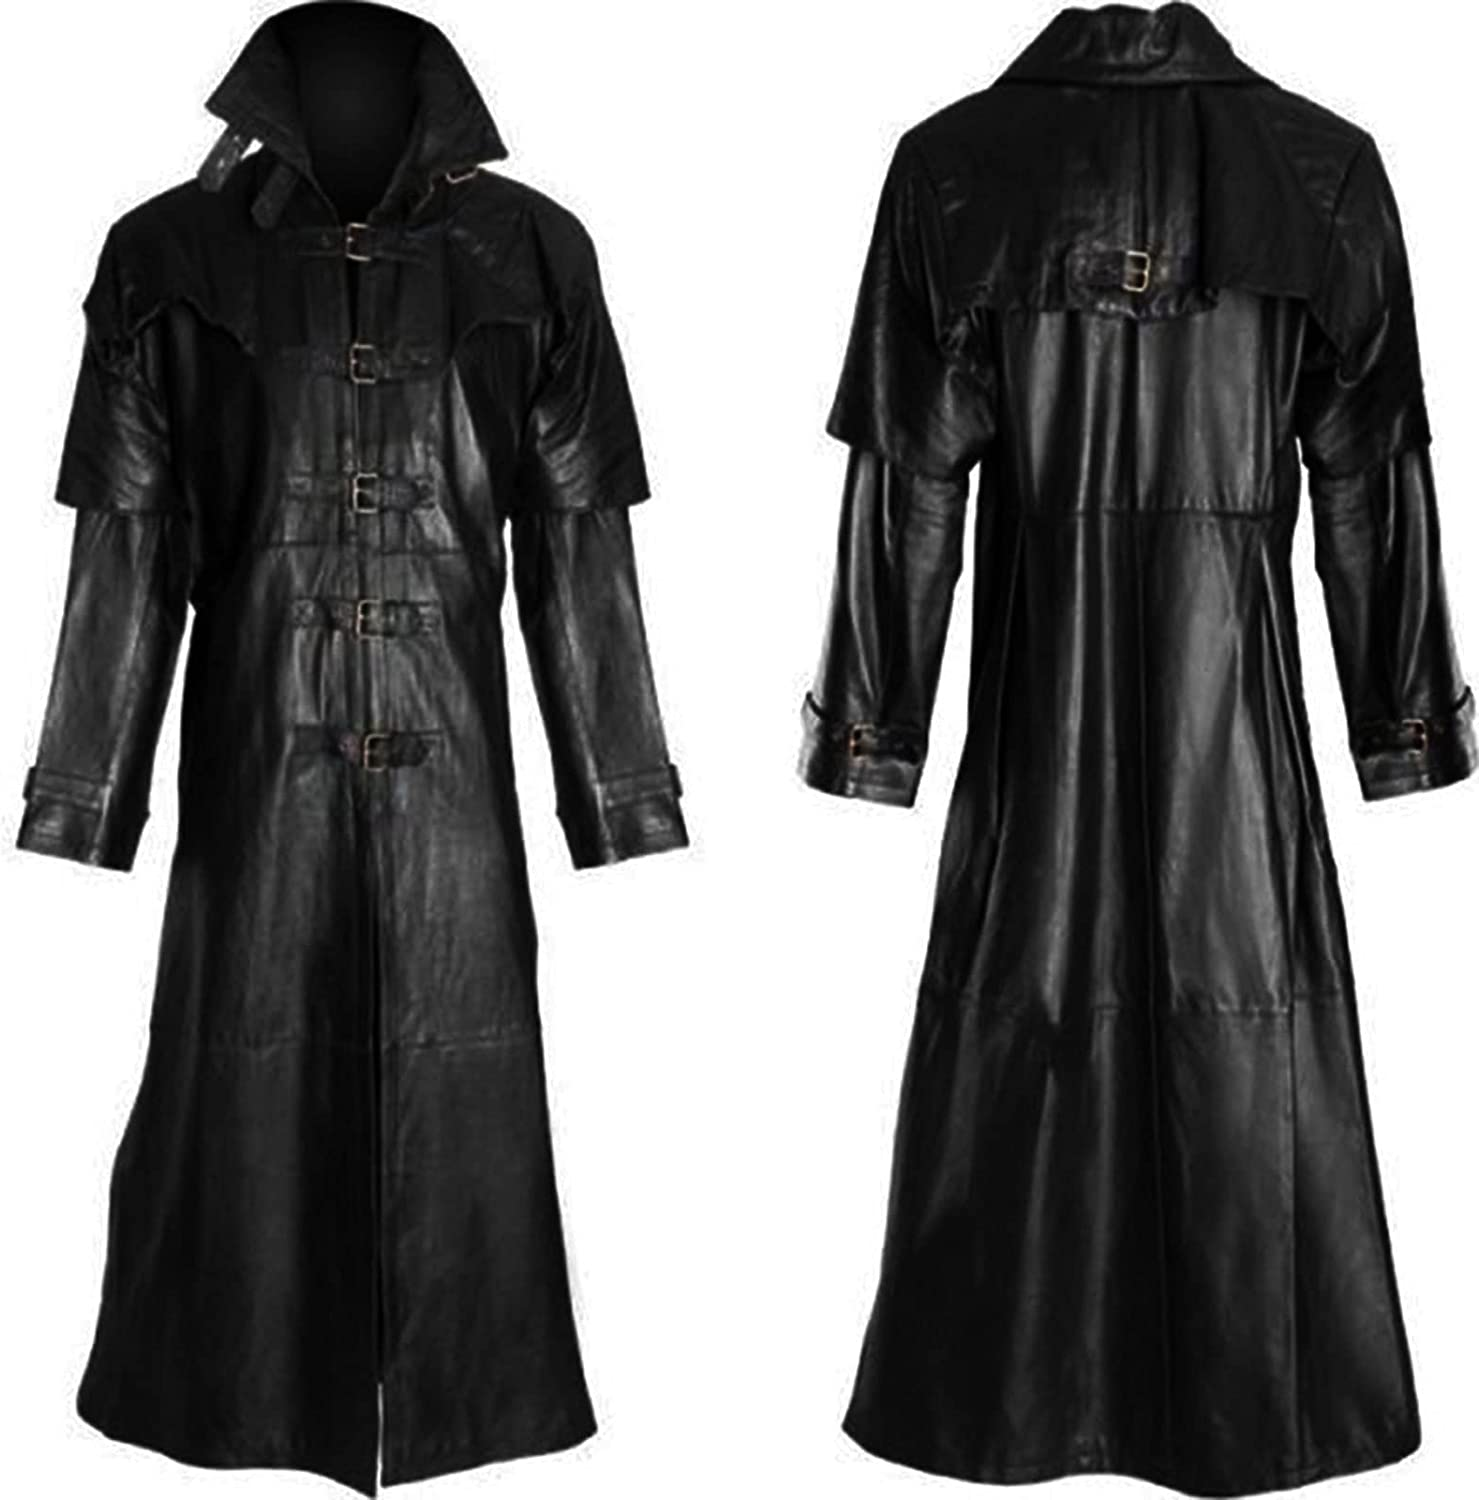 Men's Fashion Officer Military Black Leather Long Trench Coat Outwear V1450